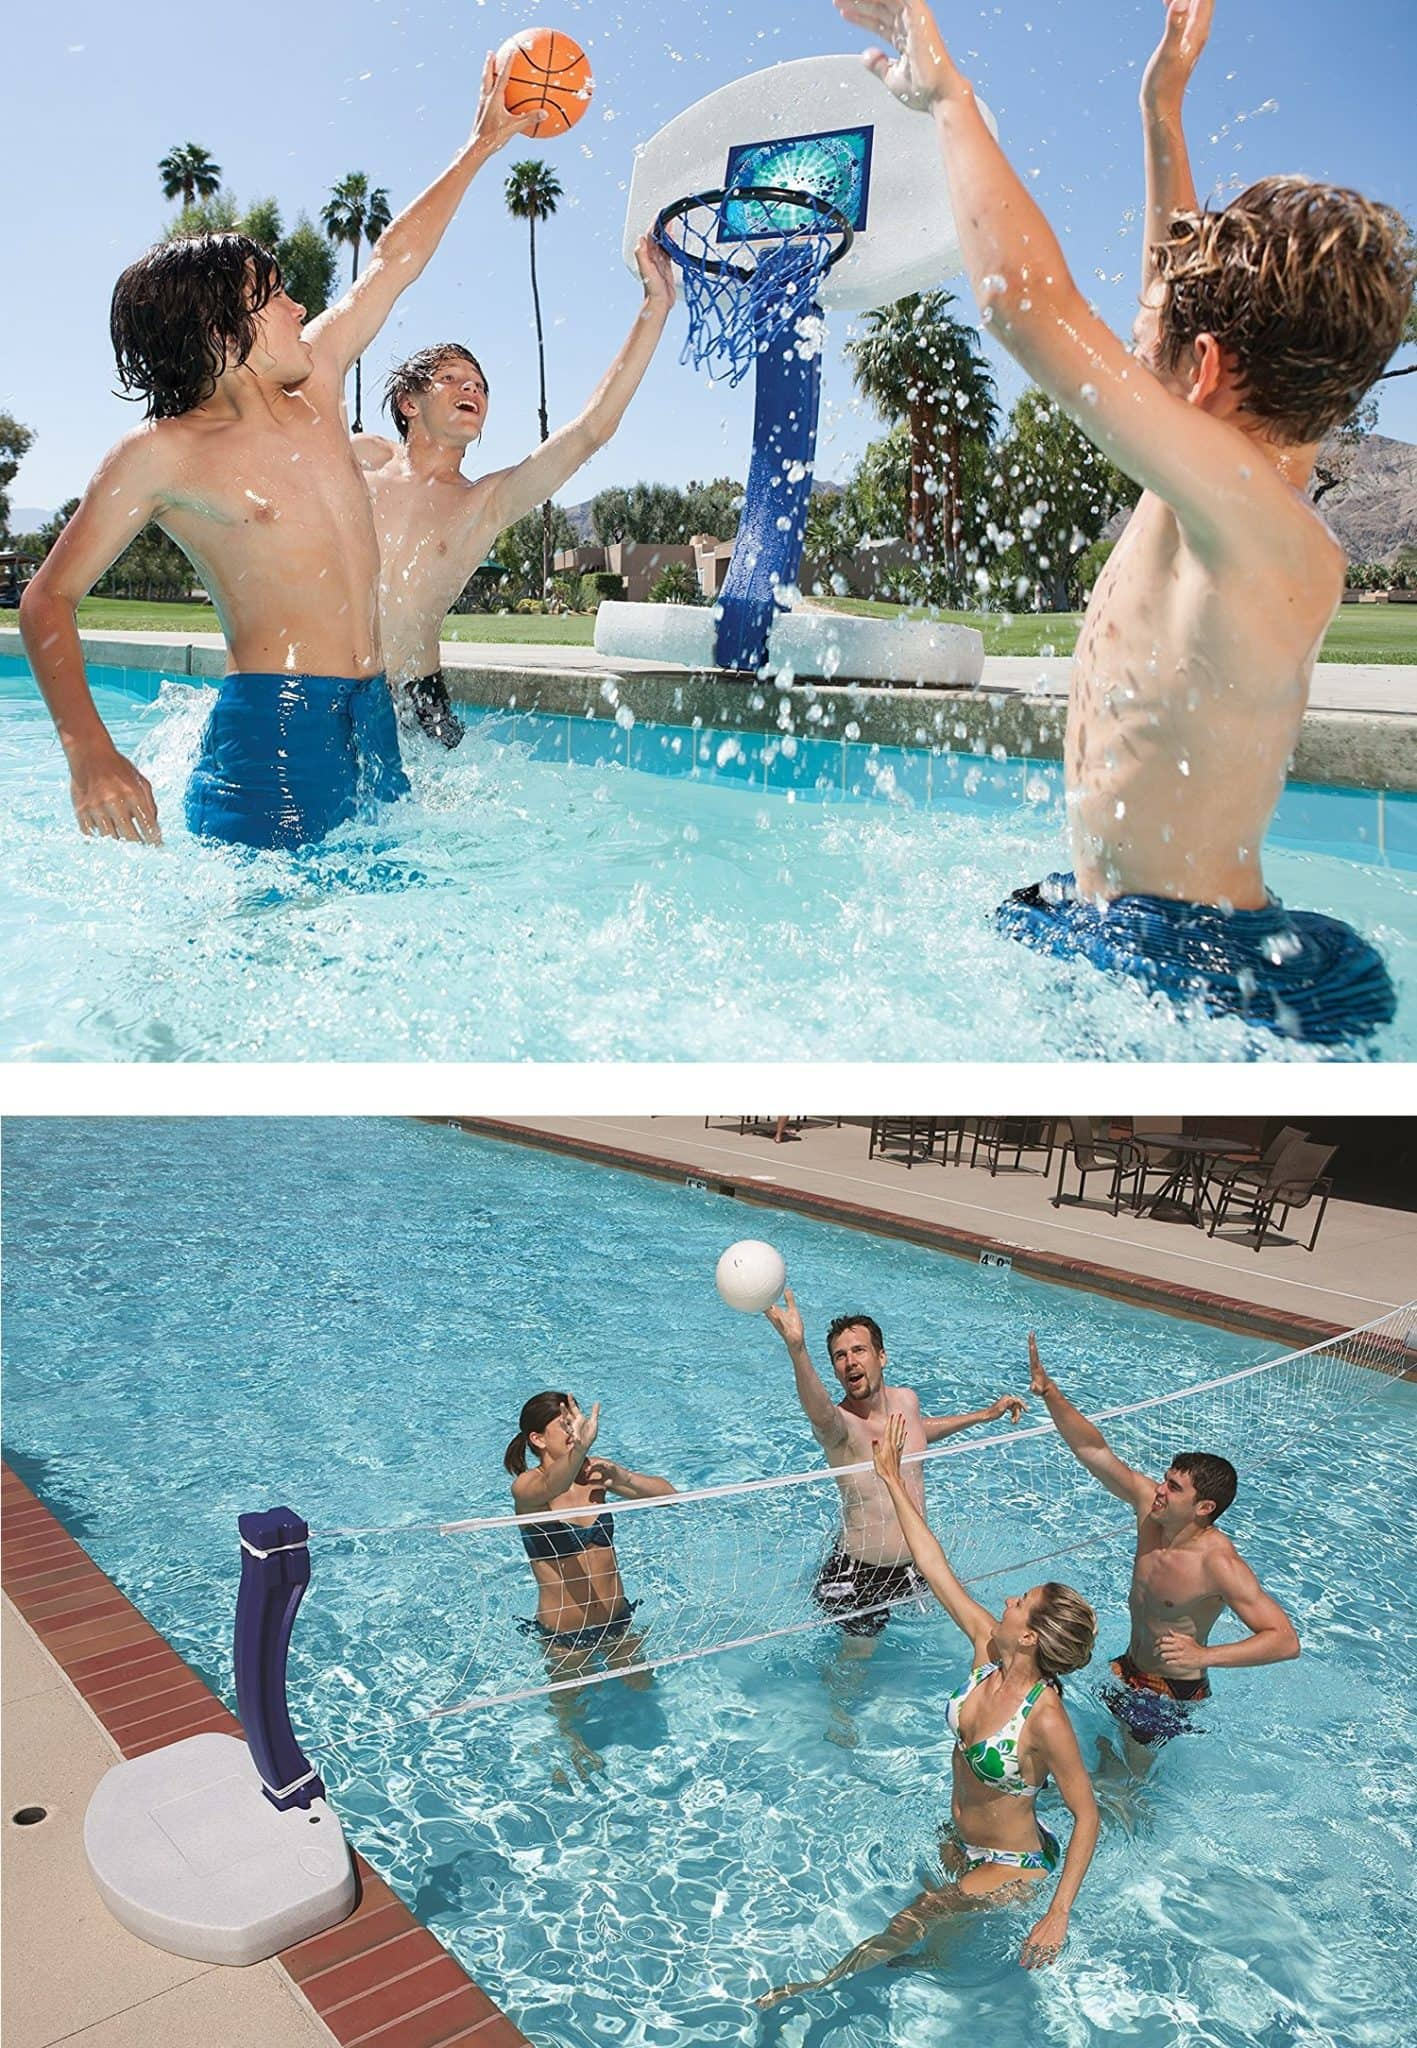 Swimways 2 in 1 pool basketball volleyball combo